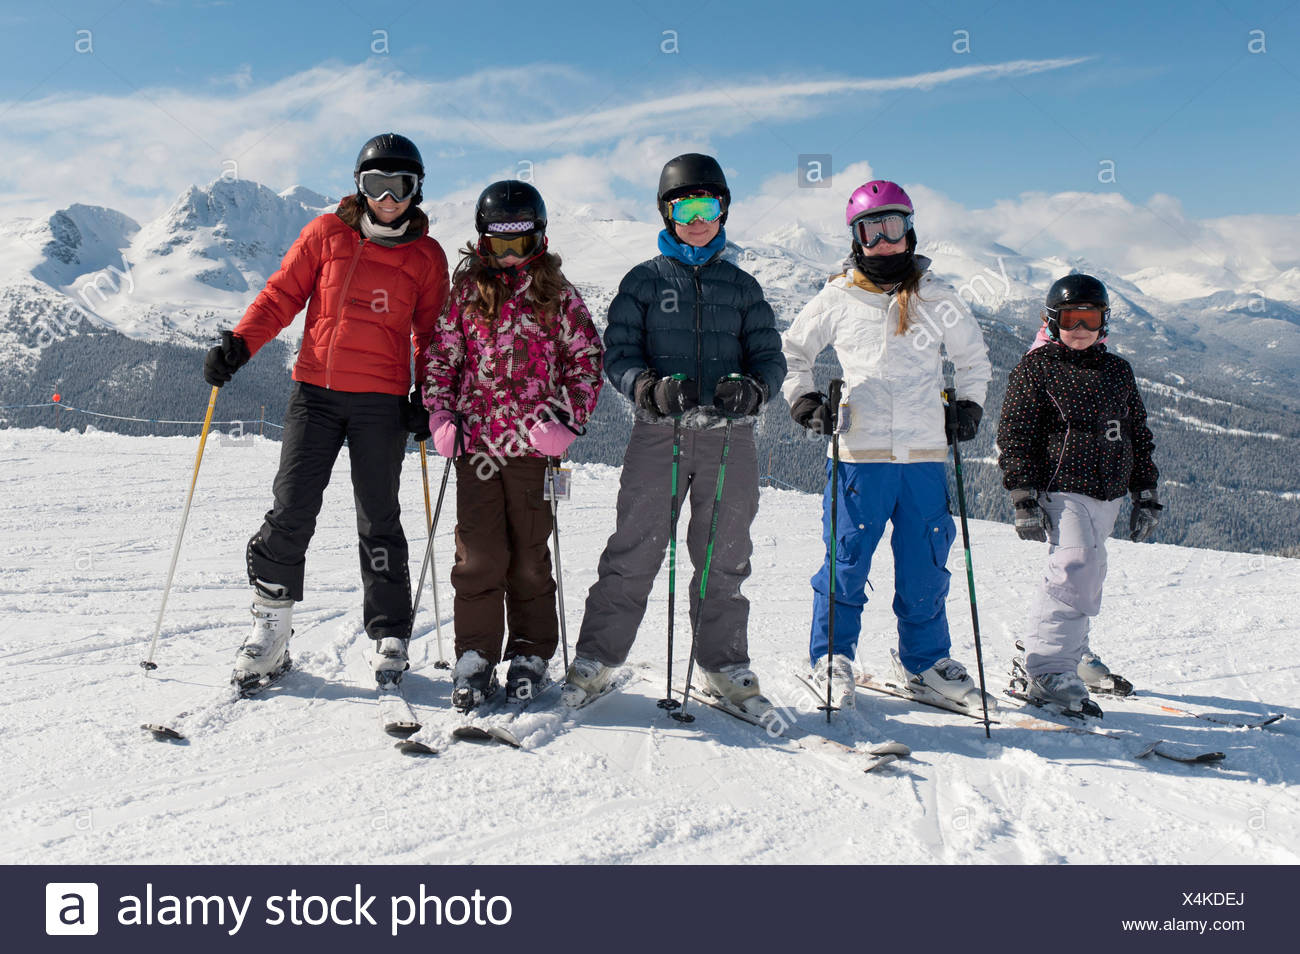 a group of skiers posing with the mountains in the background; whistler british columbia canada - Stock Image